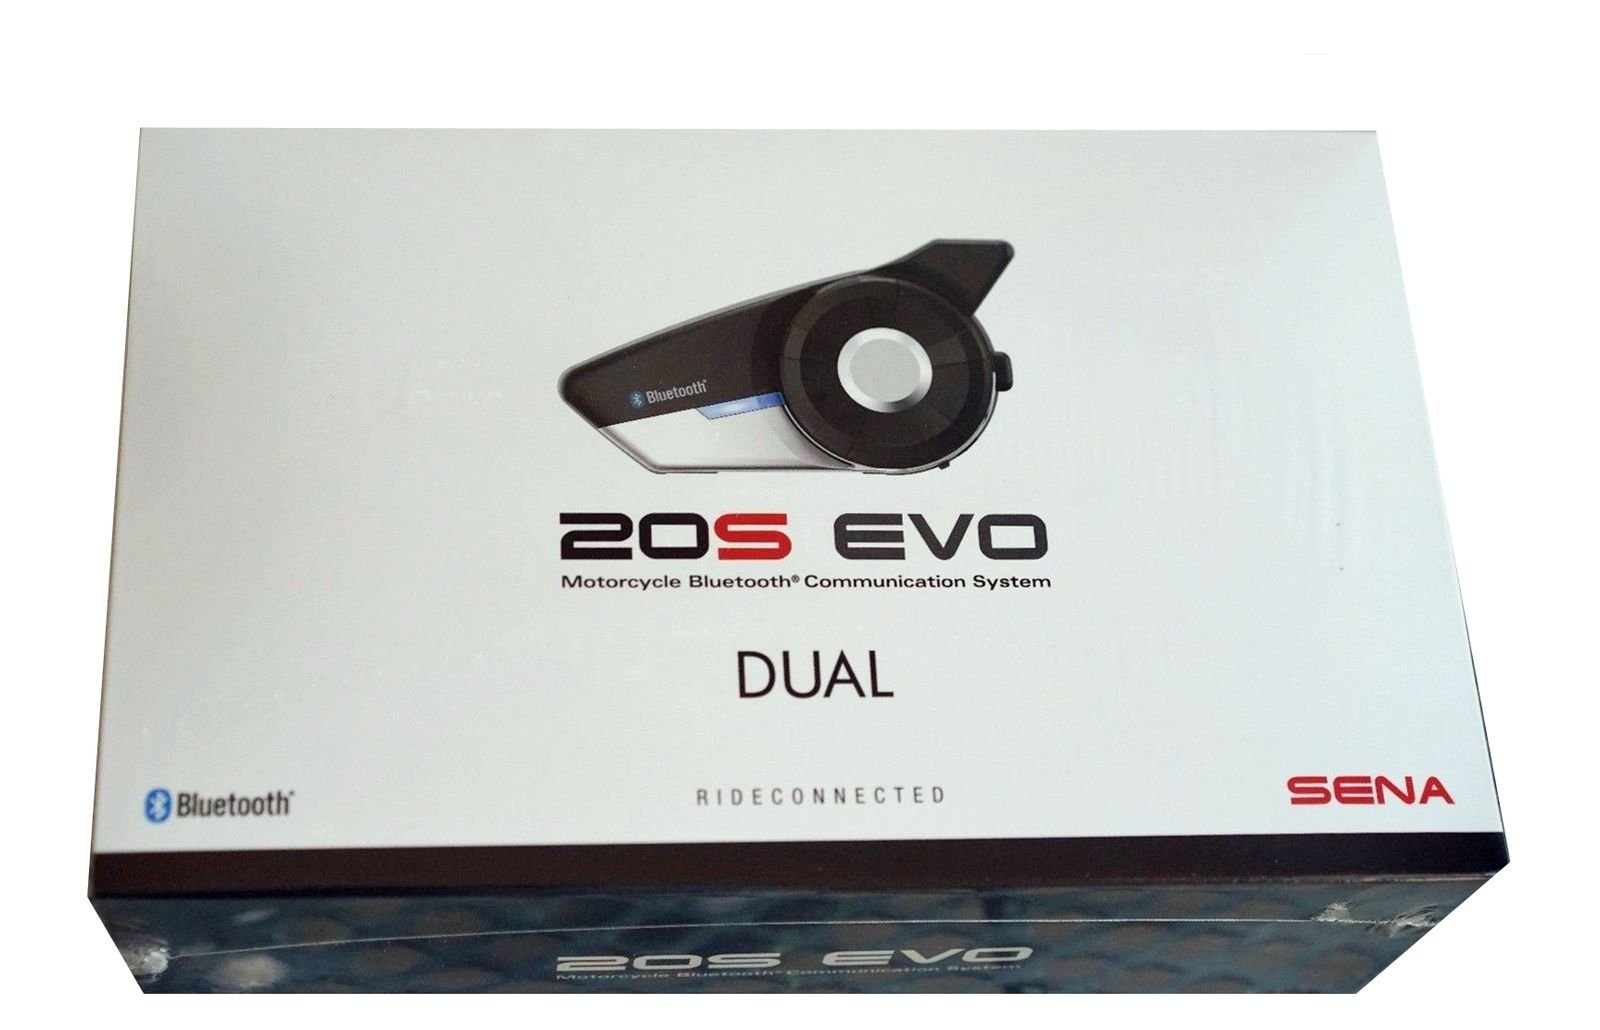 SENA 20S EVO DUAL Bluetooth 4.1 Communication System for Motorcycles